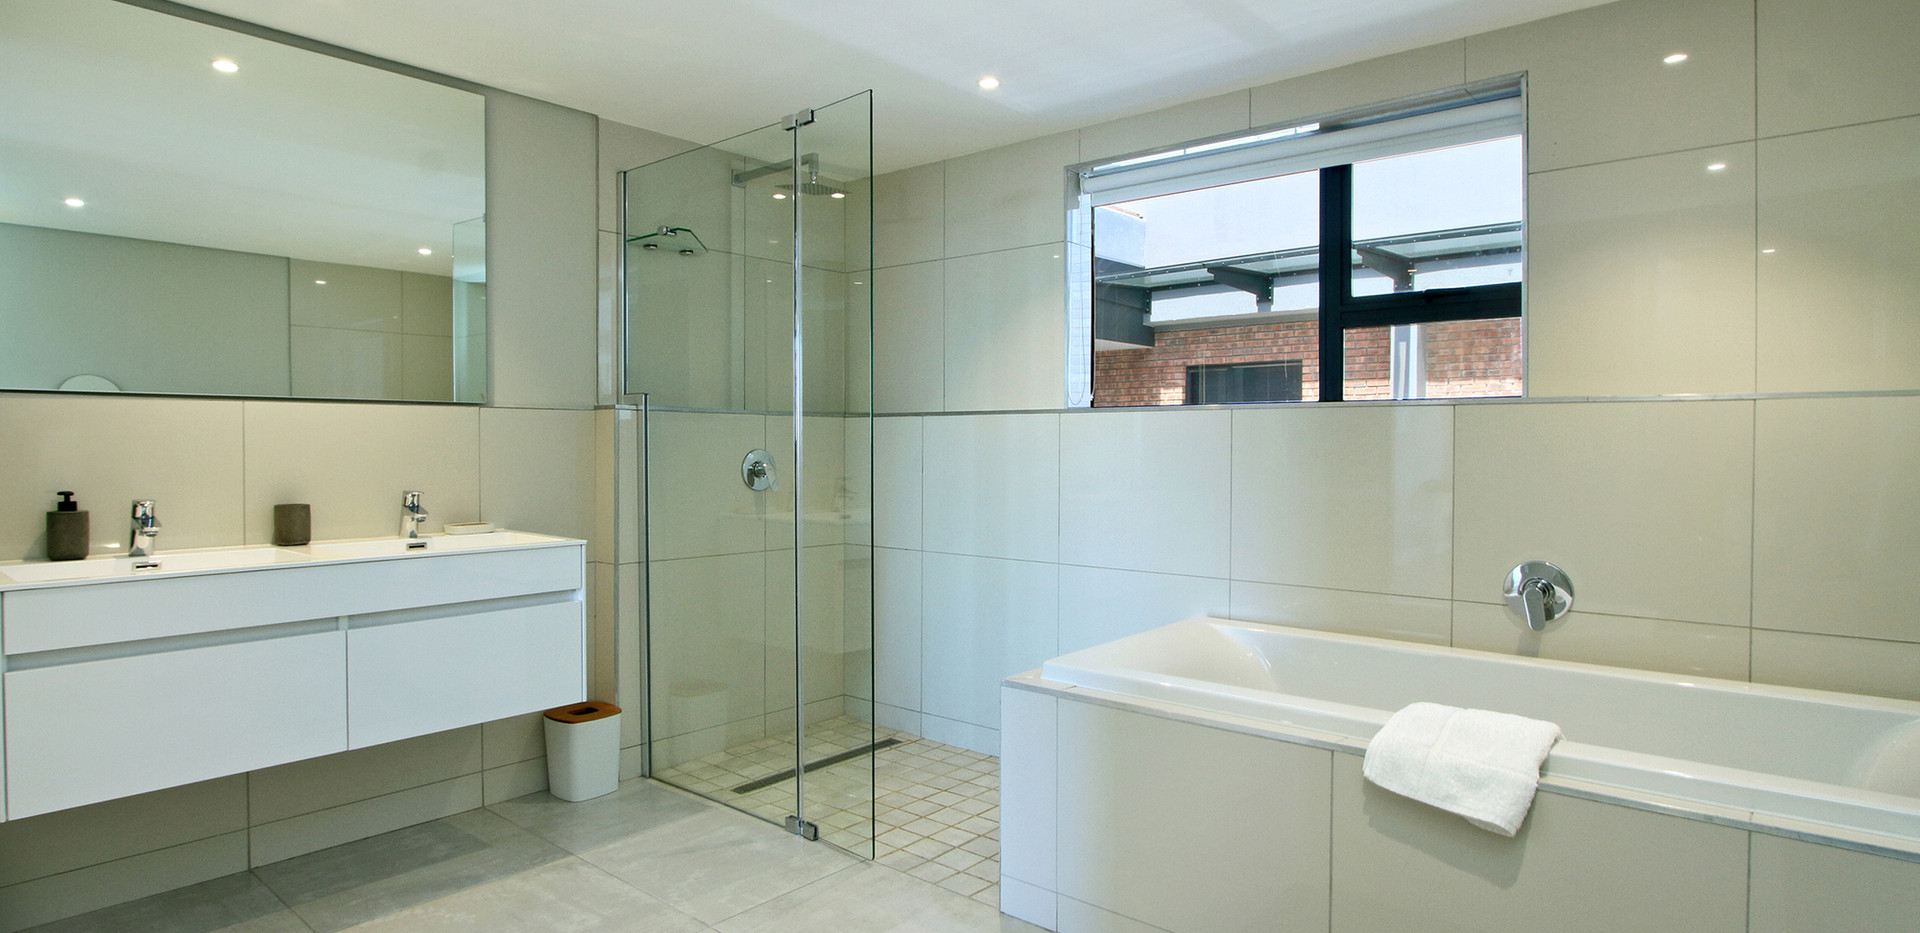 Bathroom_Penthouse_Docklands_609_ITC_1.j